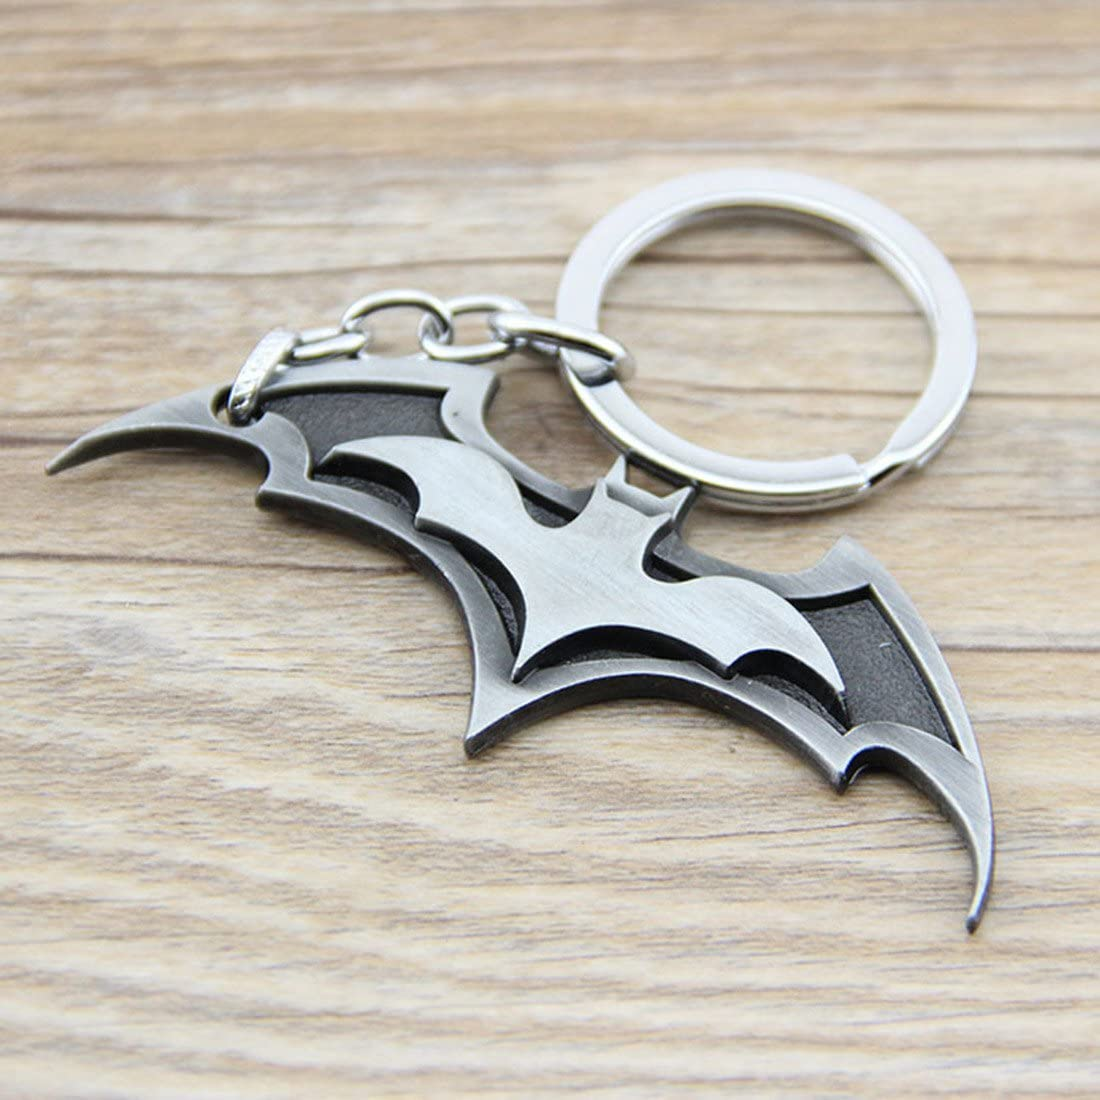 Cool Bat Symbol Key Chain Zinc Alloy Keychain Bat Shape Metal Key Ring Tag for Your Autos, Home or Boat (Silver)